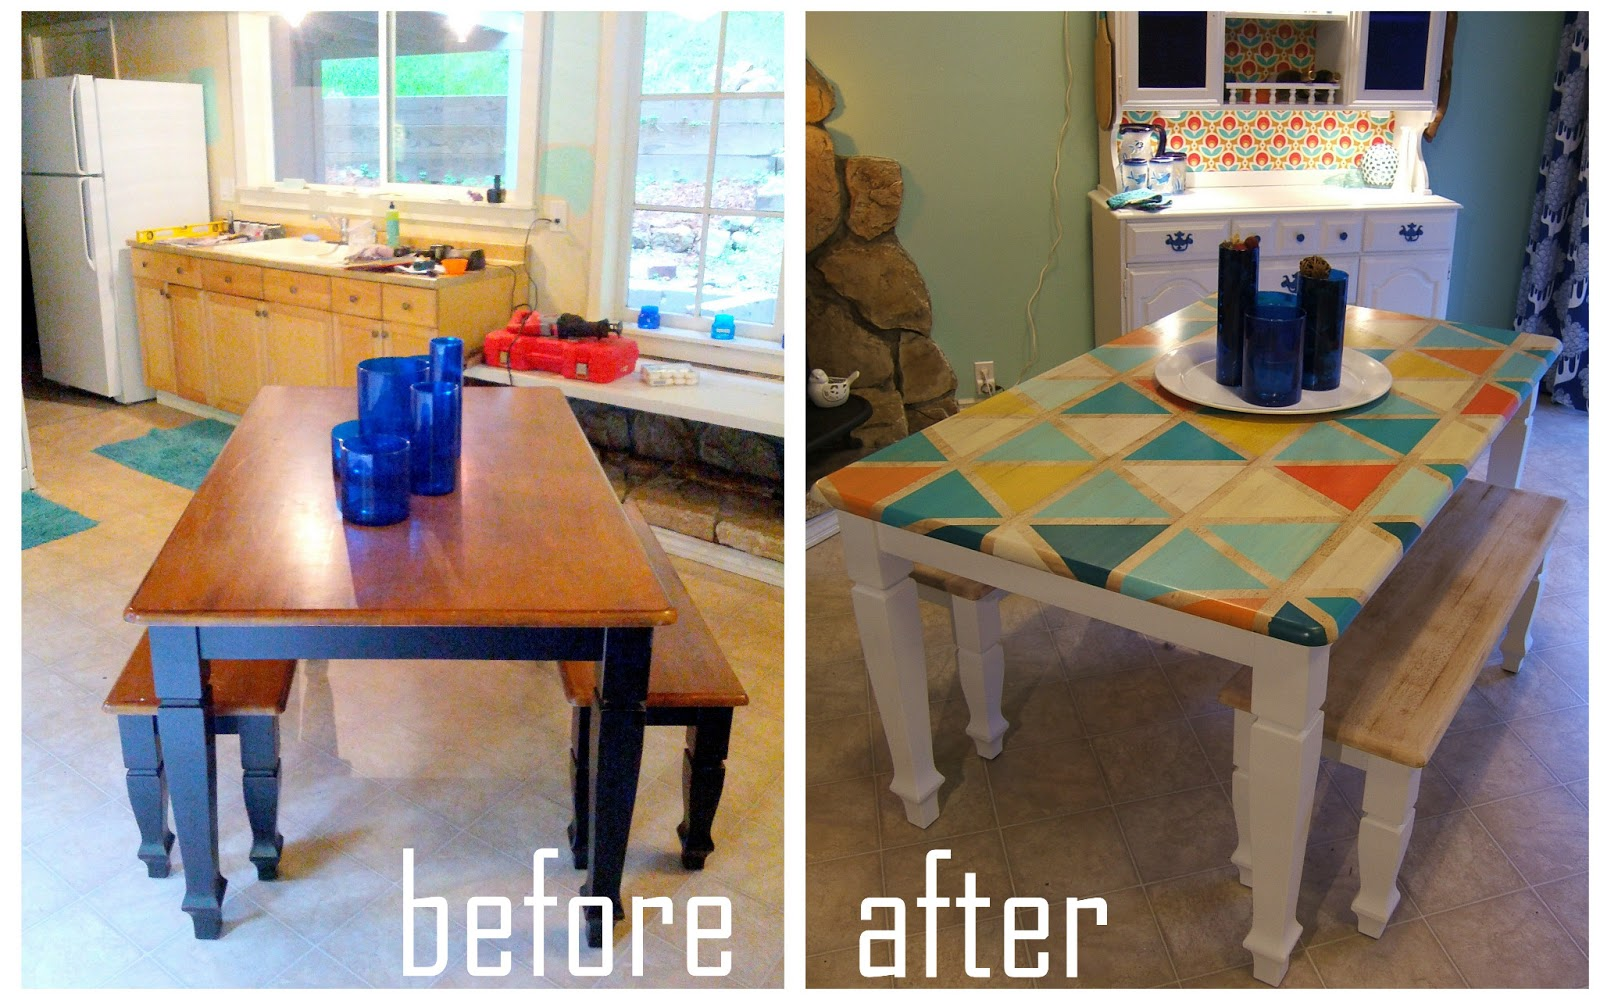 Yar, ( enter pirate accent ) a satisfying before & after ...